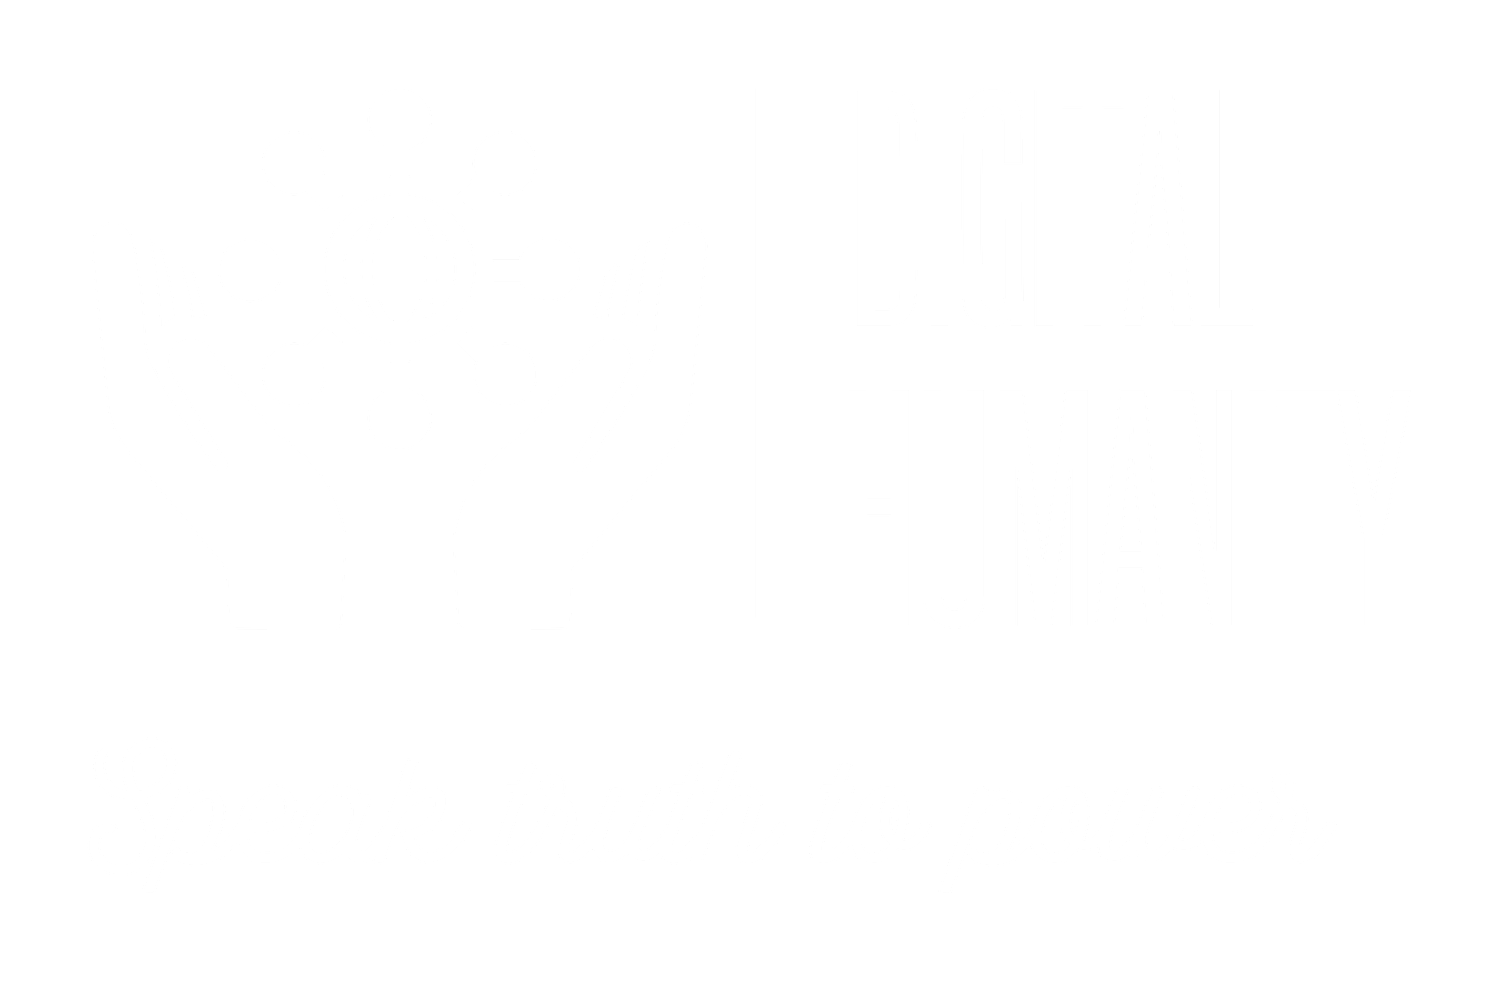 Digital Humanity